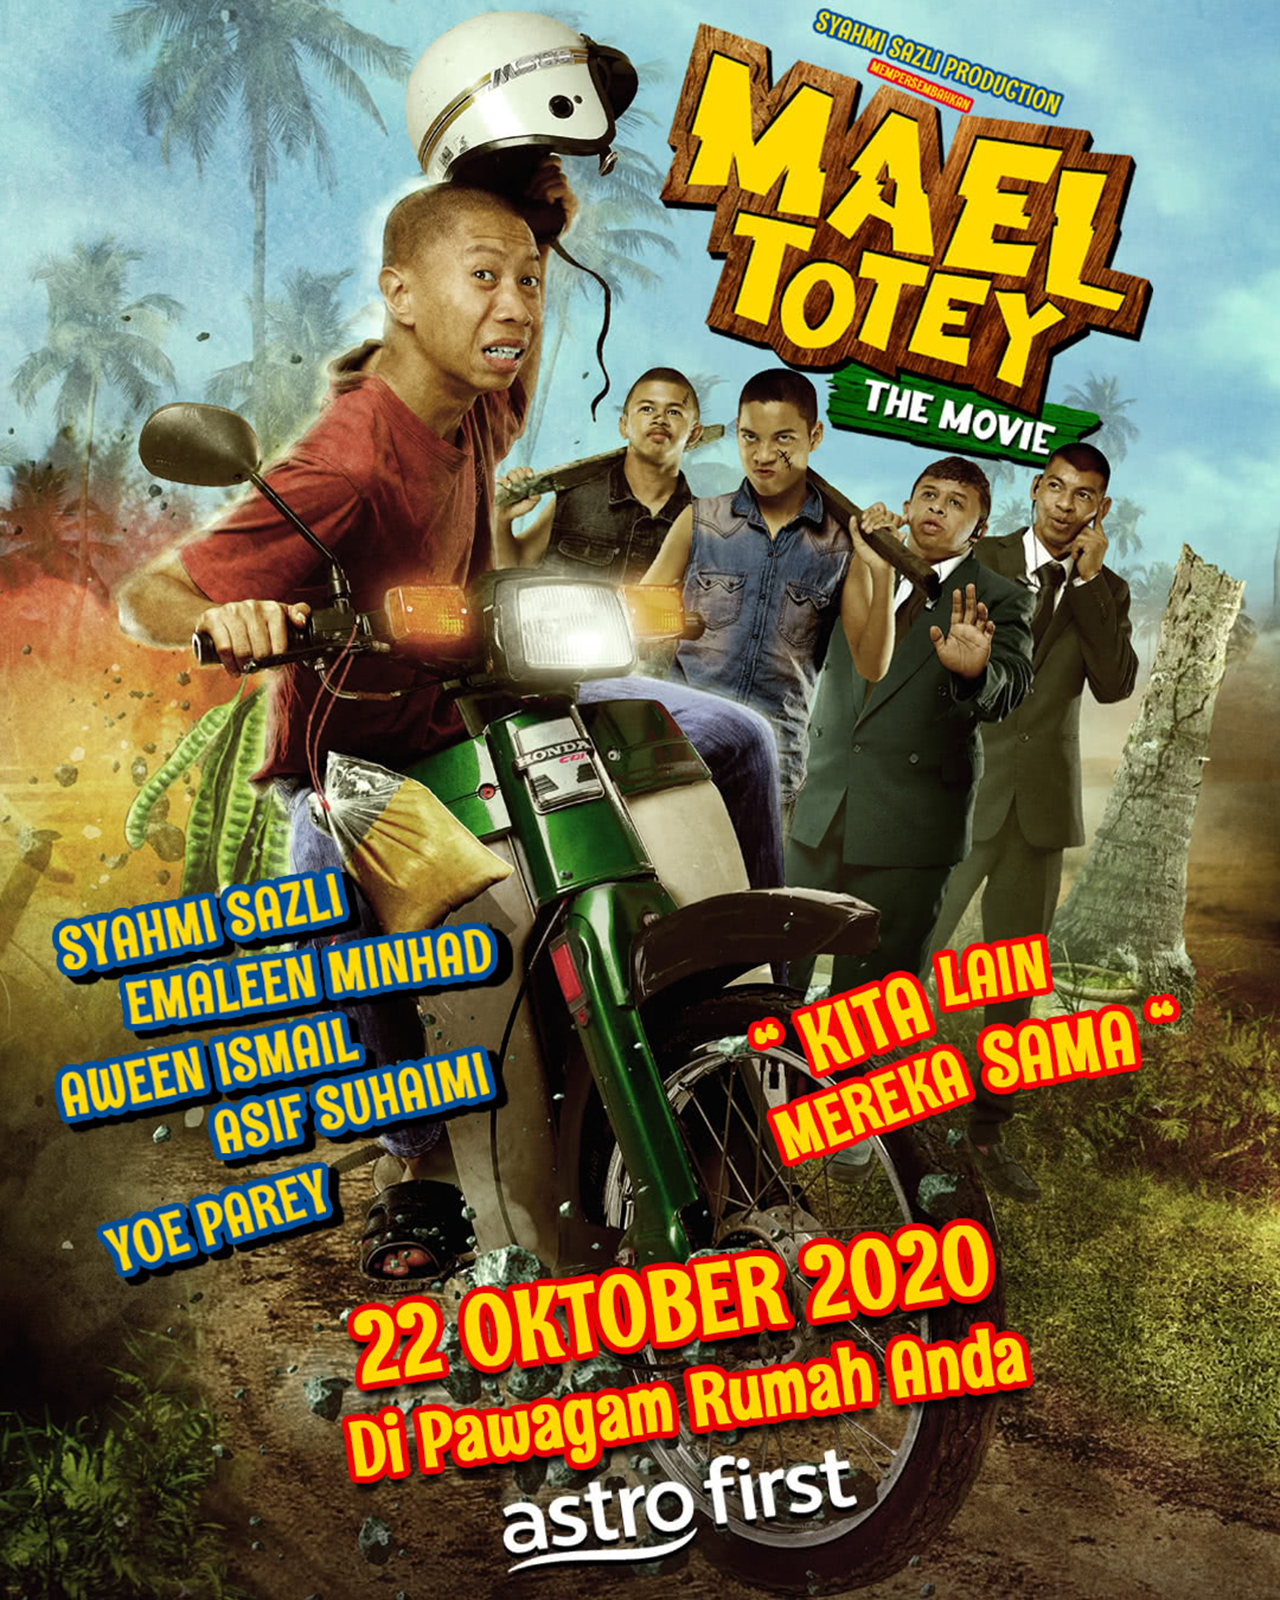 Sipnopsis Mael Totey The Movie Full. Apa Maksud Totey?